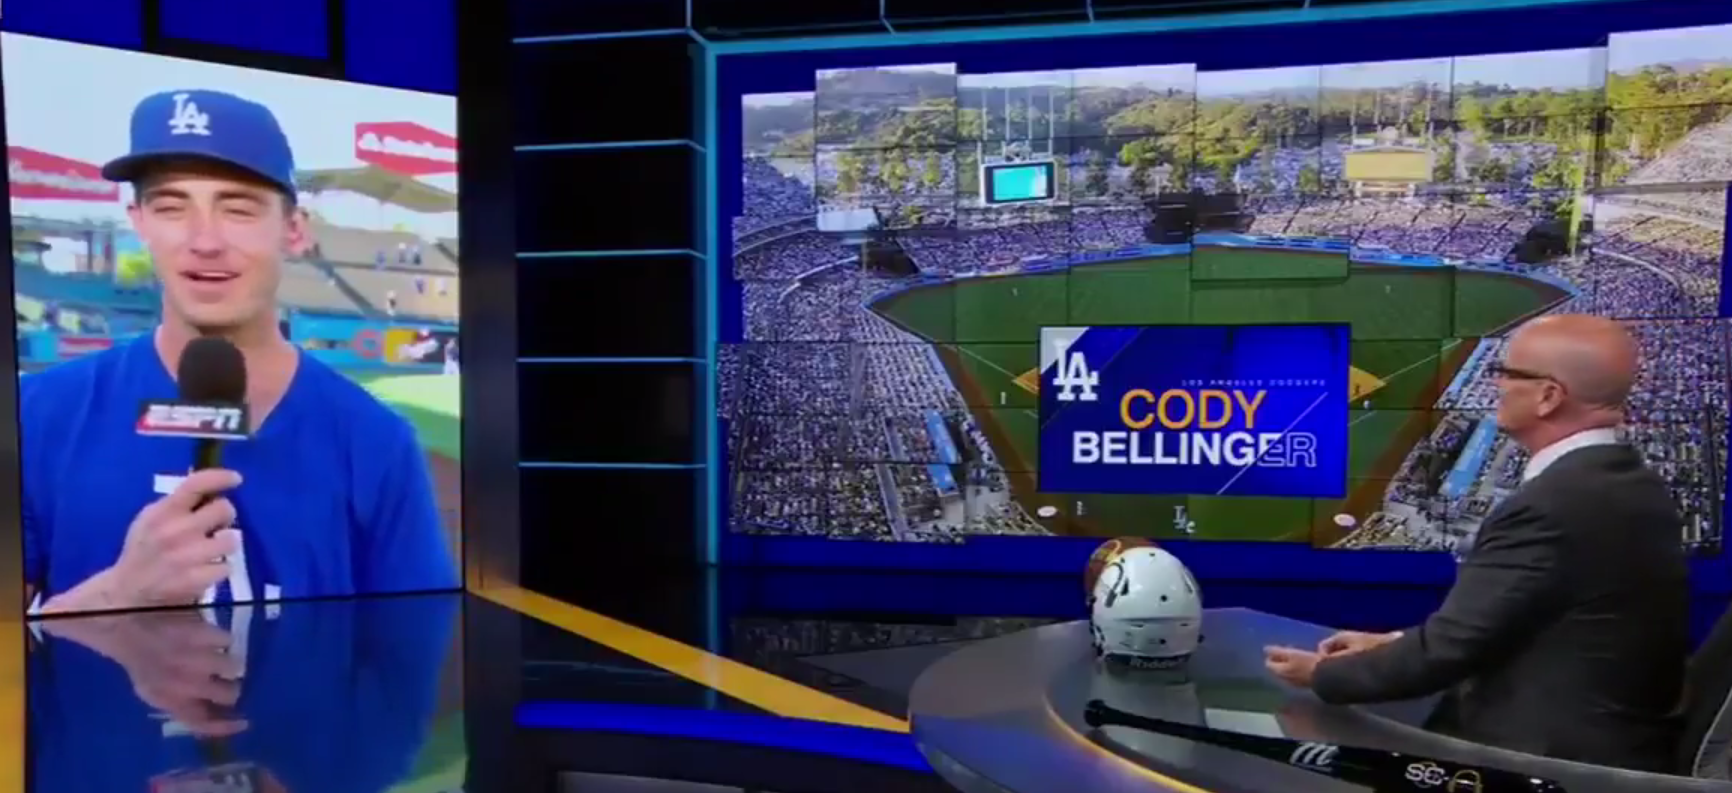 Is Cody Bellinger the root of Dodgers clubhouse strife? My